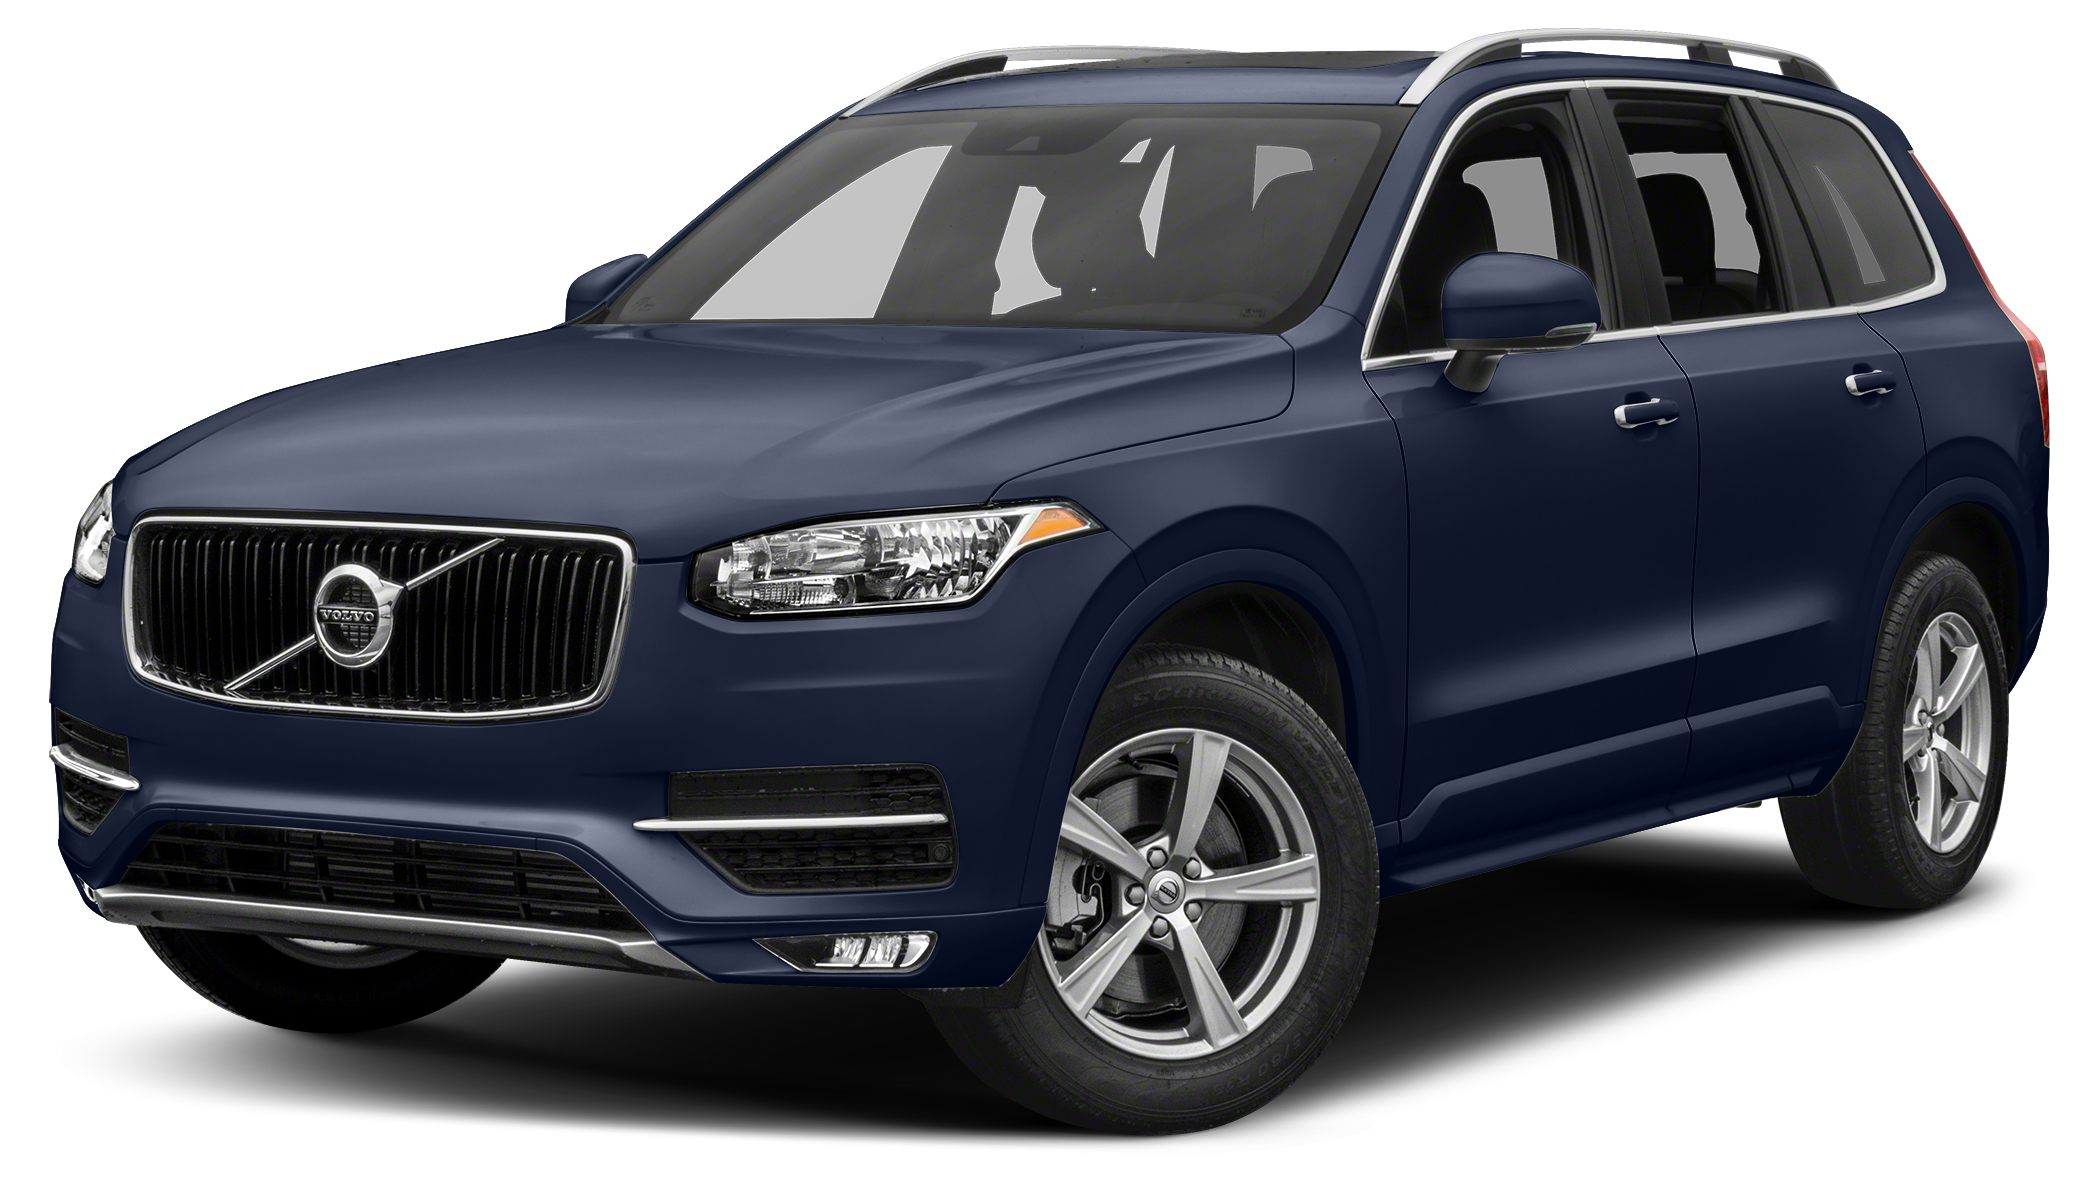 2016 Volvo XC90 T6 Momentum  ONE OWNER  Volvo Certified Warranty Through February 2023 or 100